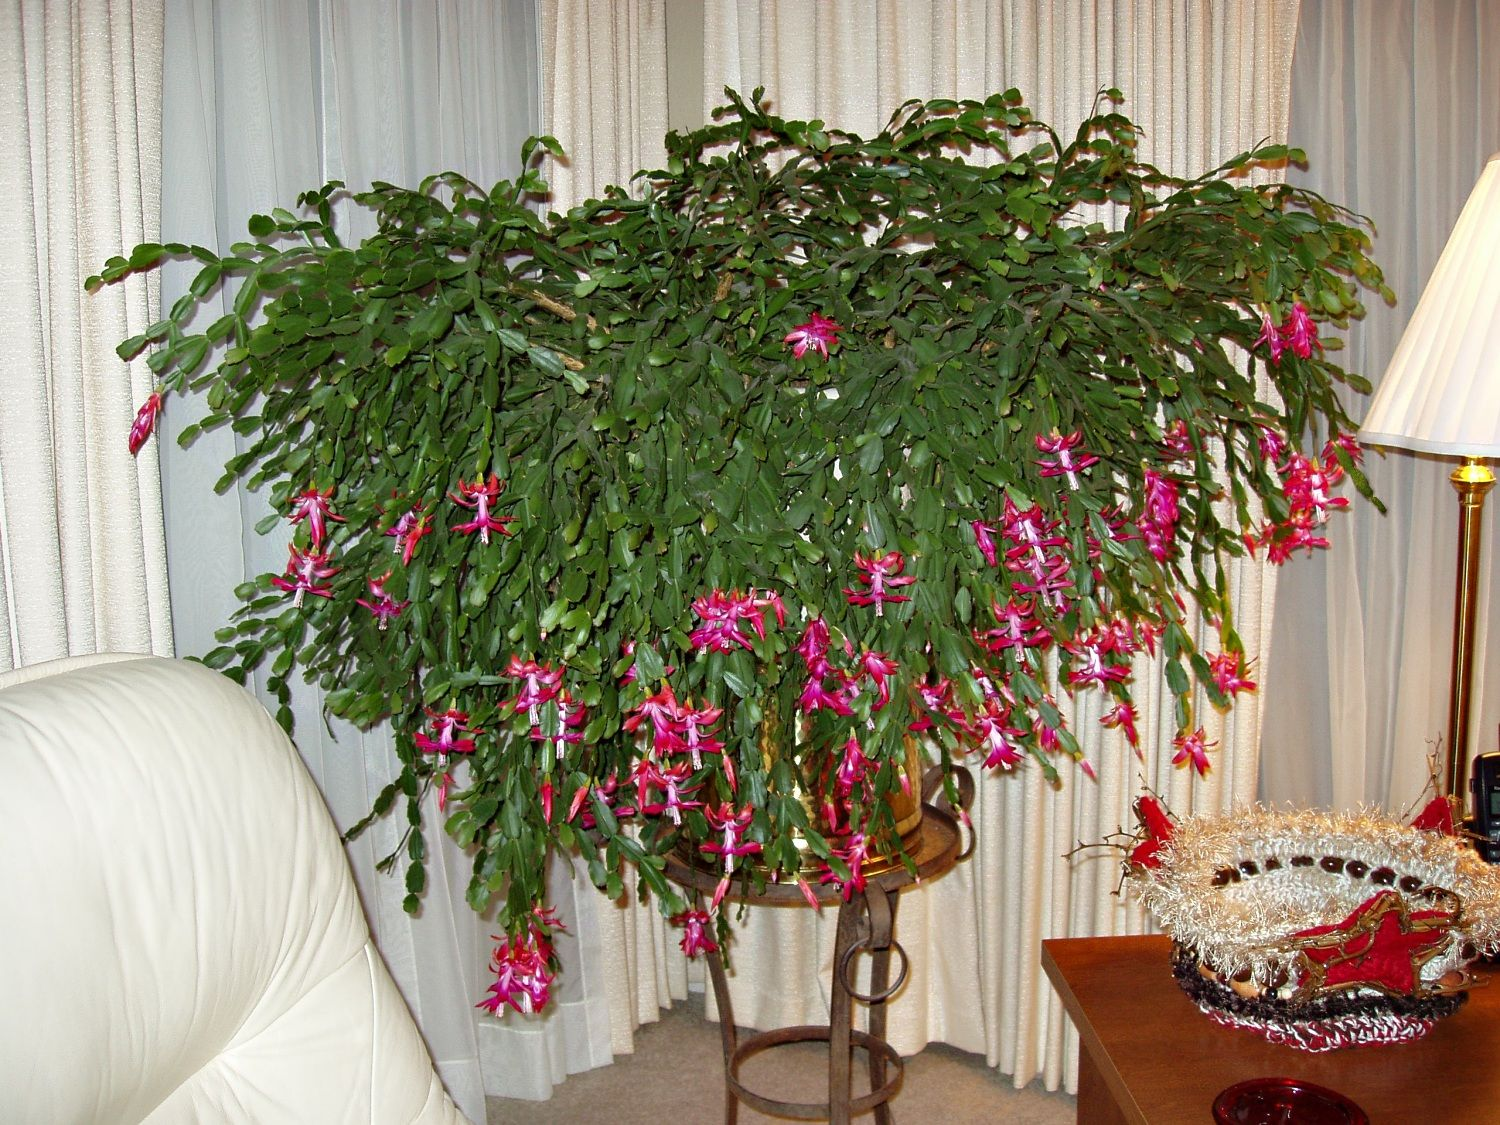 christmas tree cactus garden - photo #16